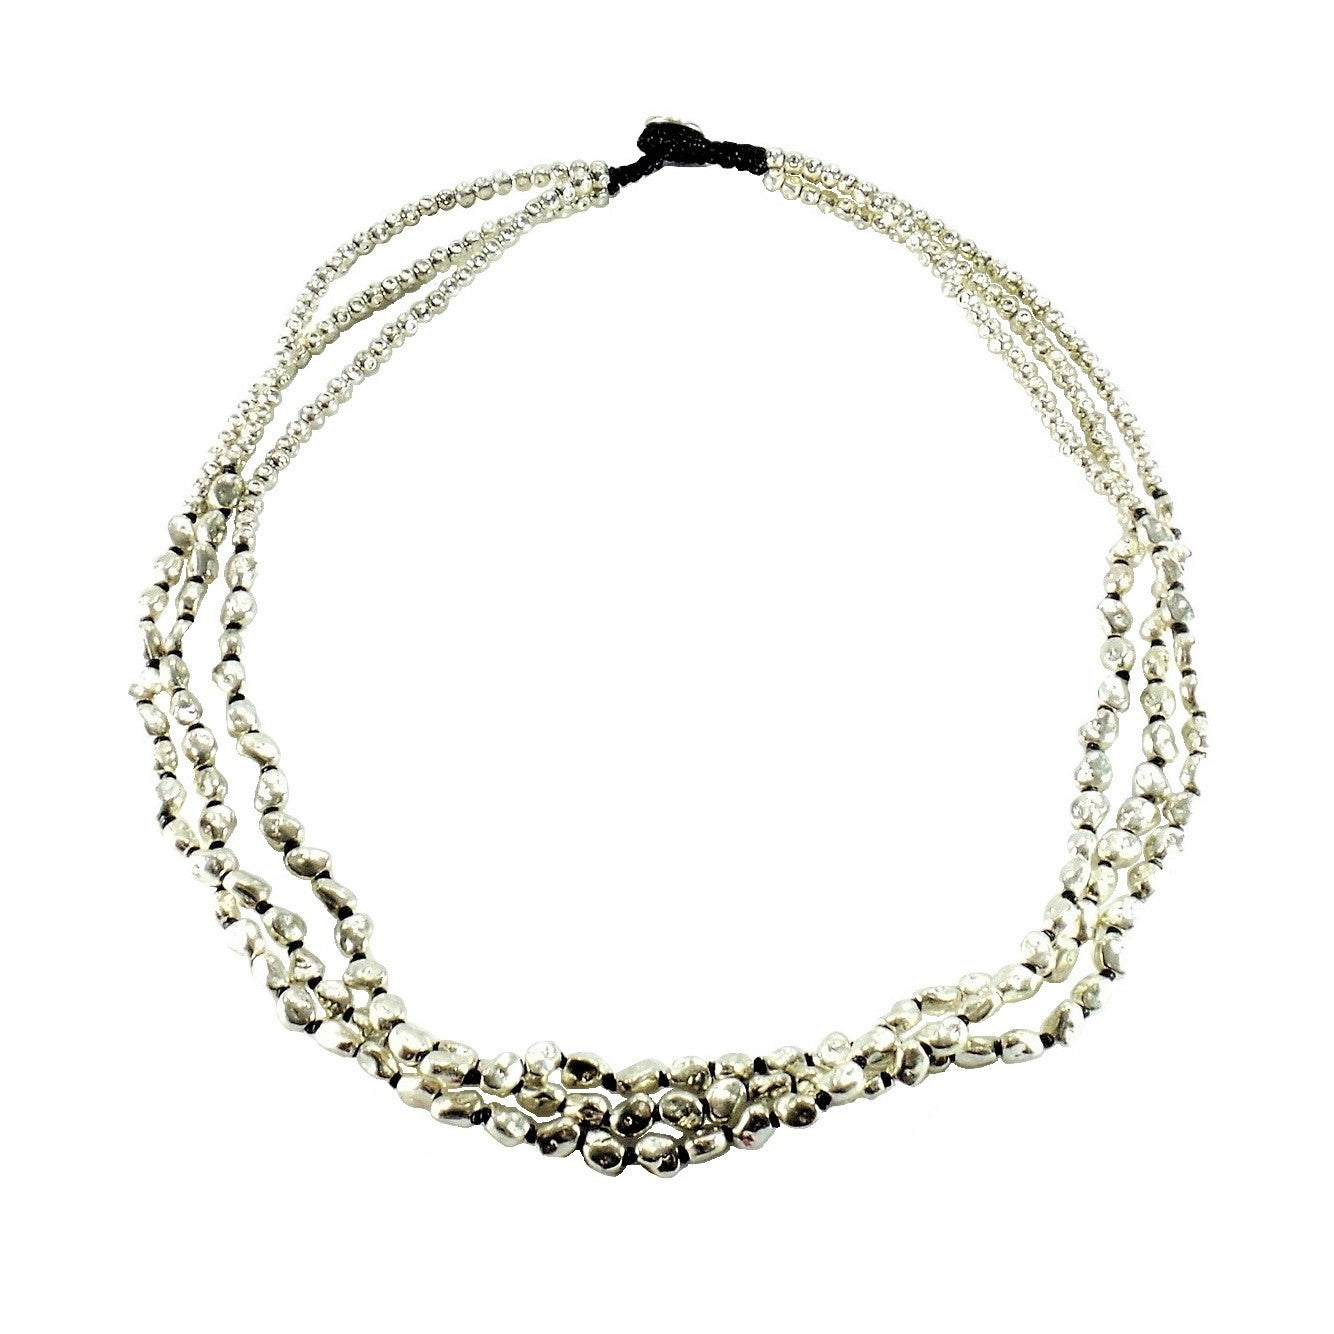 Alloy Specialty 3 Strand Necklace